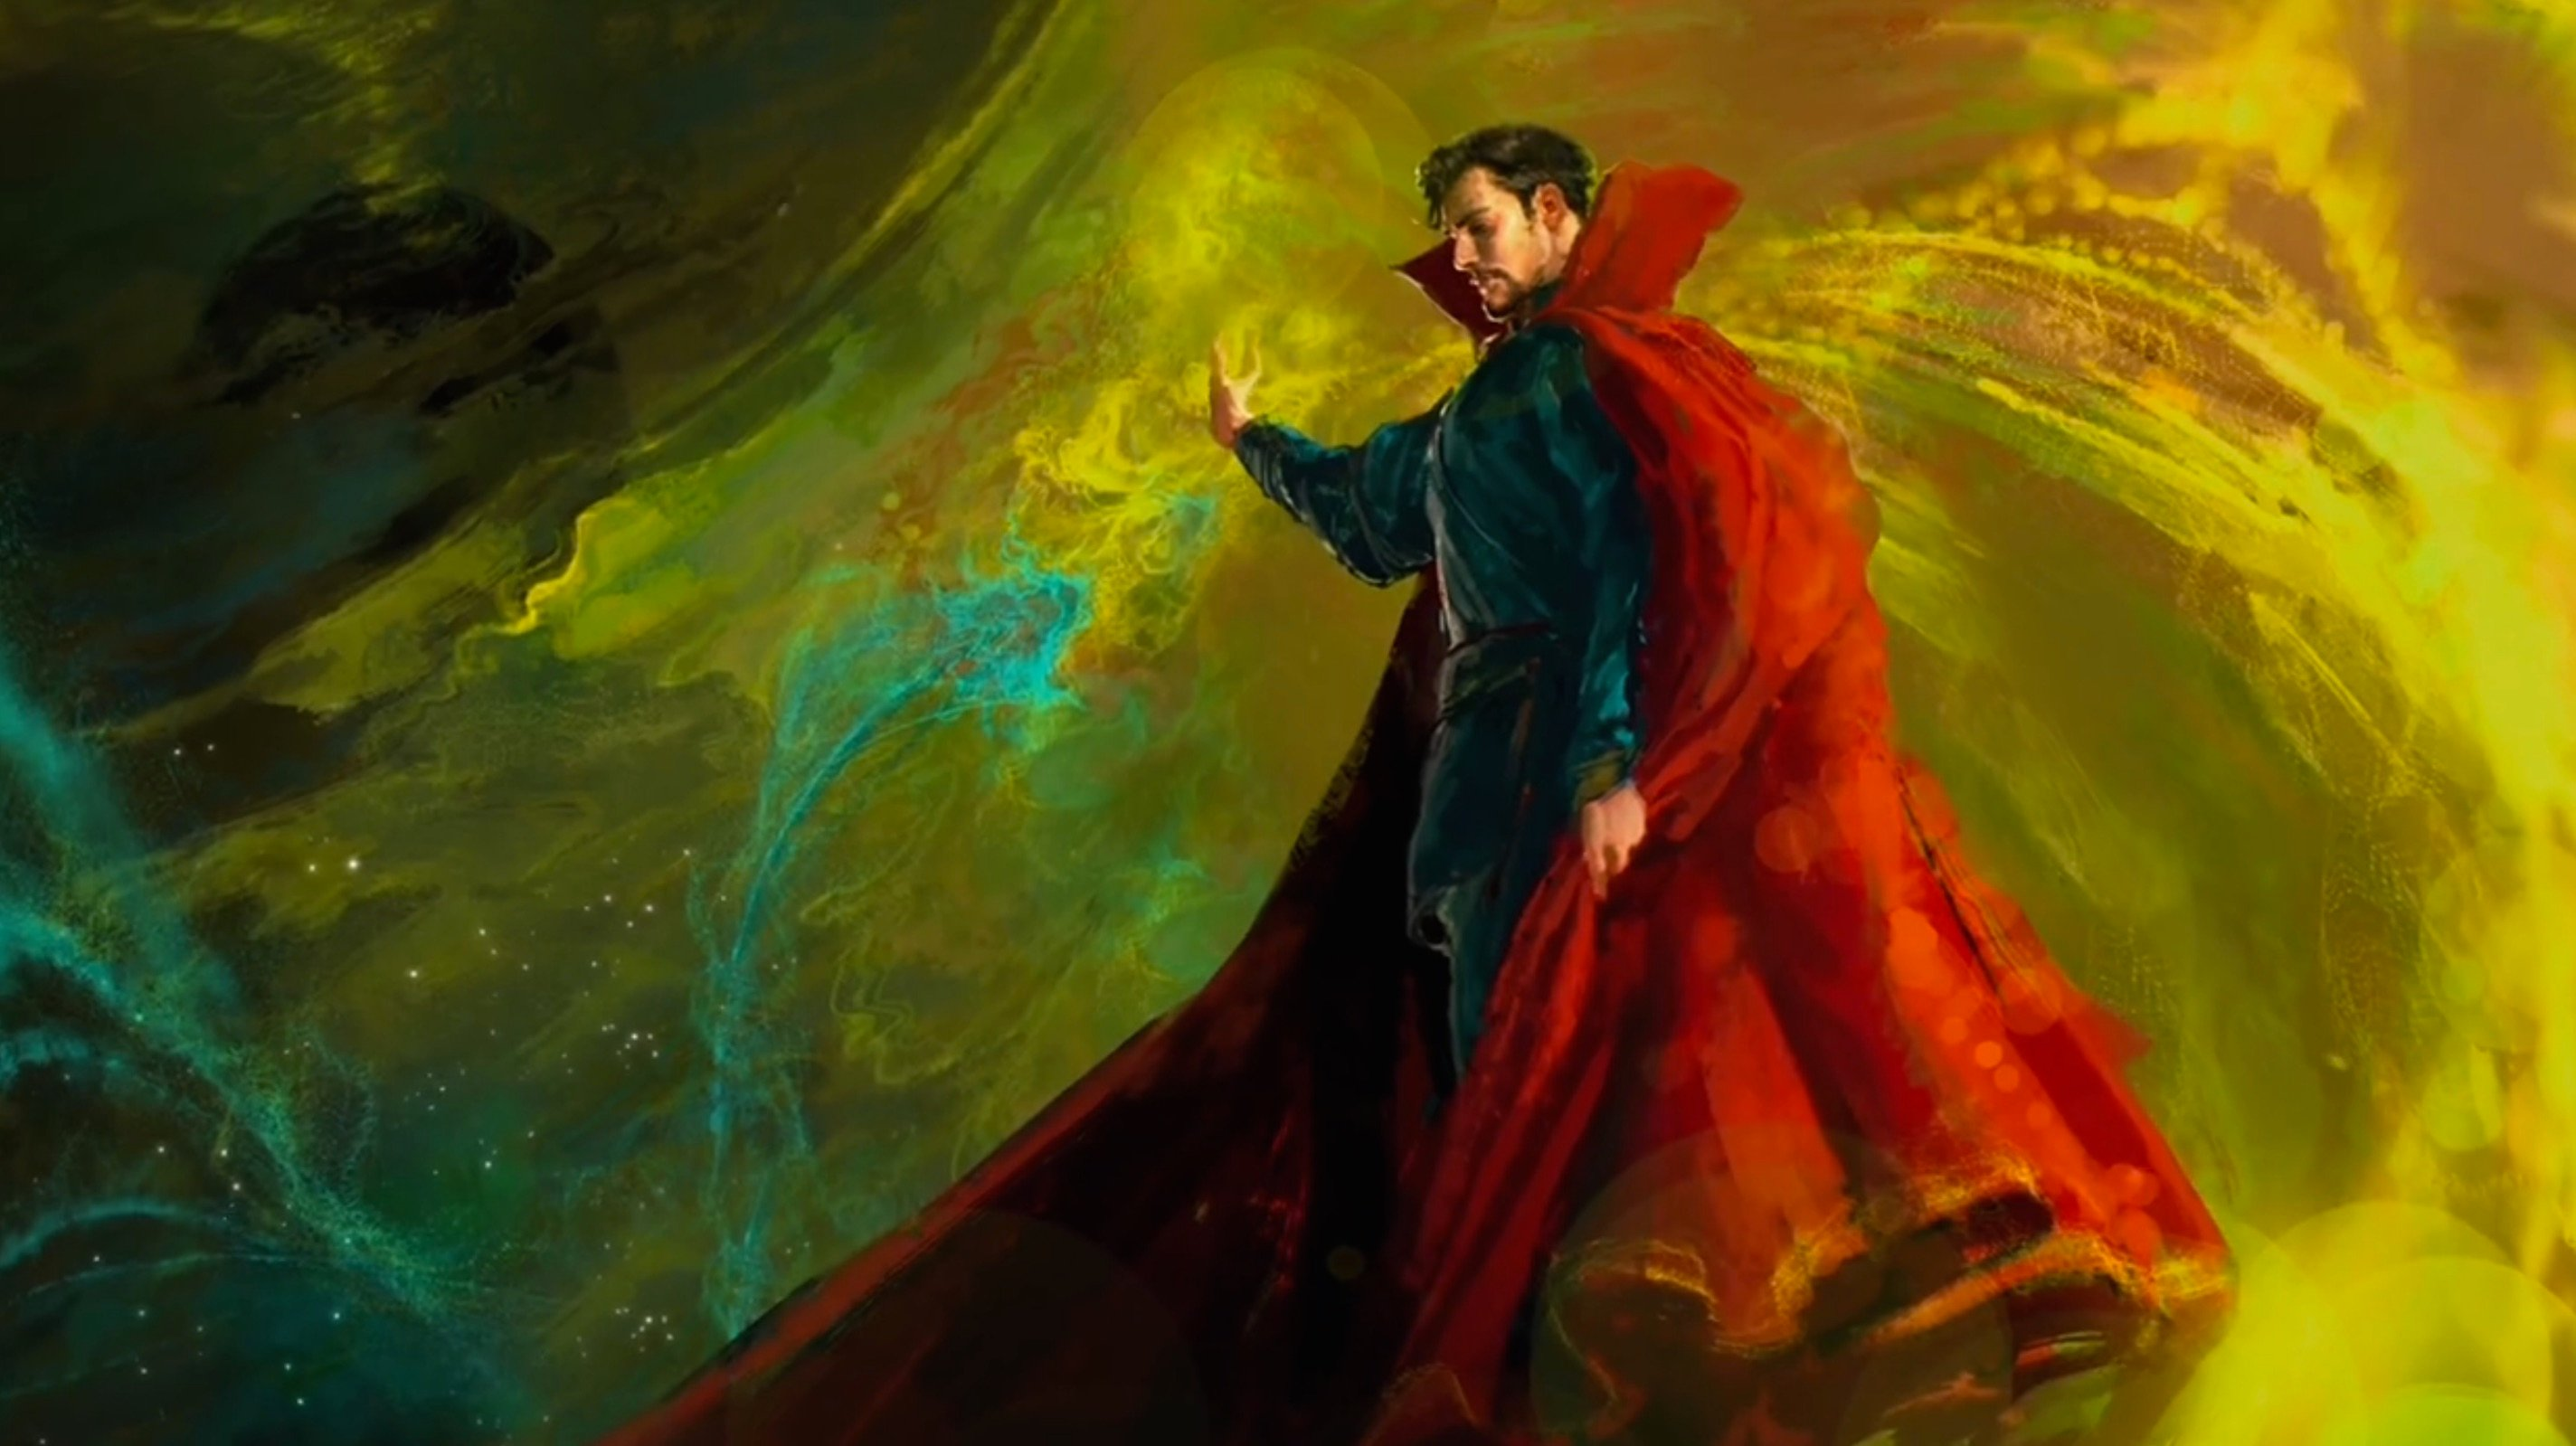 strange doctor strange Doctor strange - dr stephen strange's (benedict cumberbatch) life changes after a car accident robs him of the use of his hands when traditional medicine.